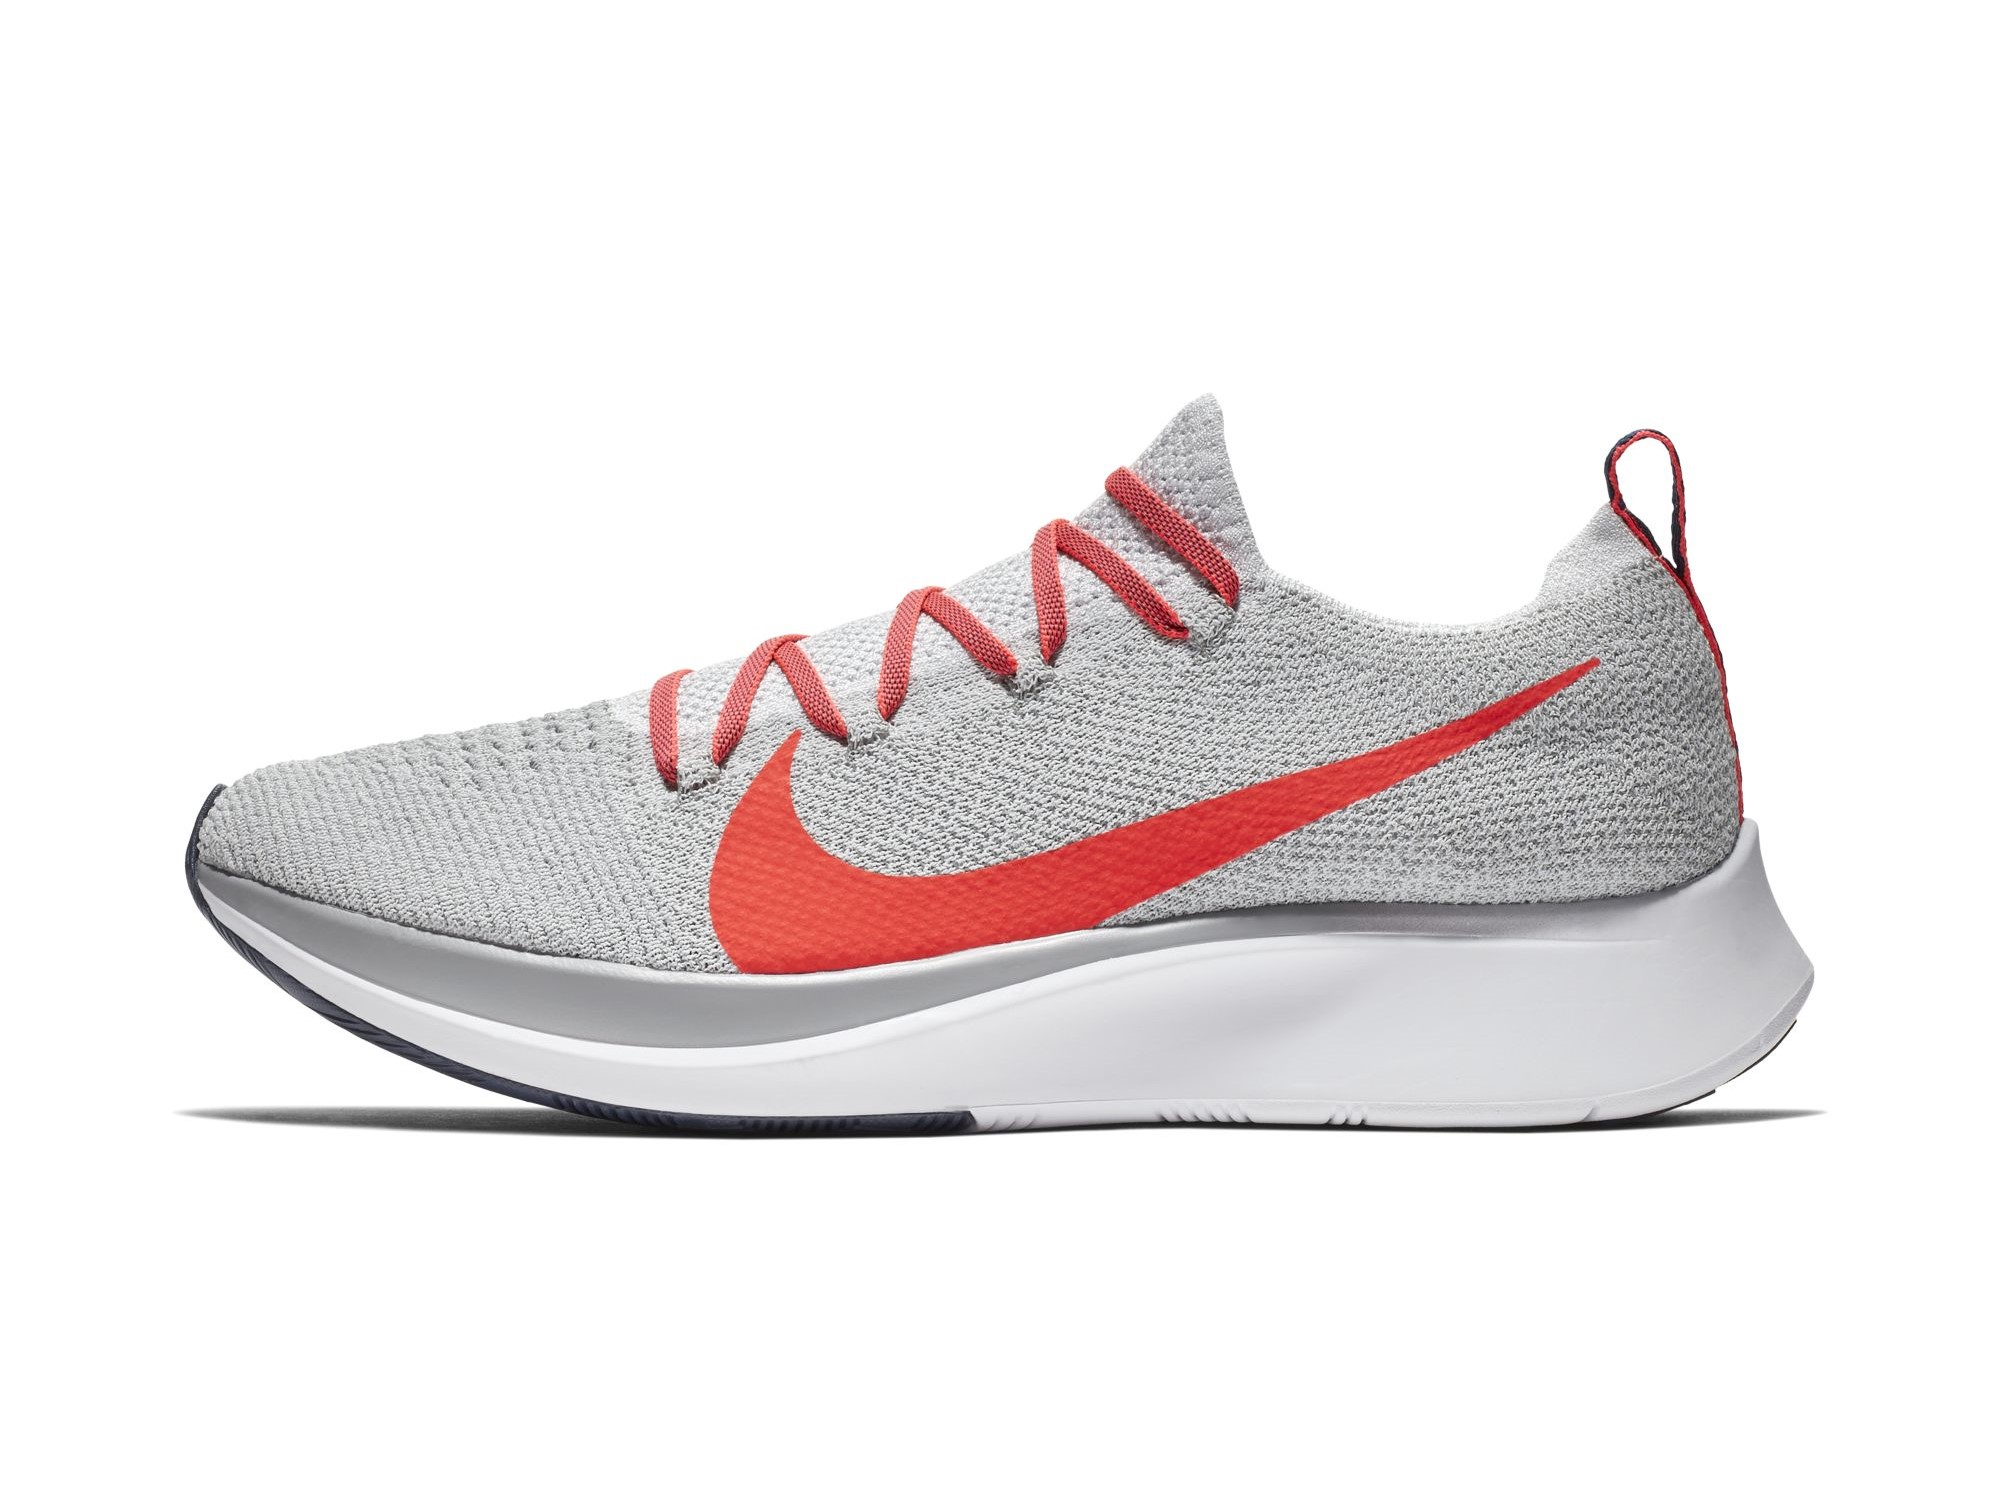 nike zoom fly flyknit pure platinum release dtae